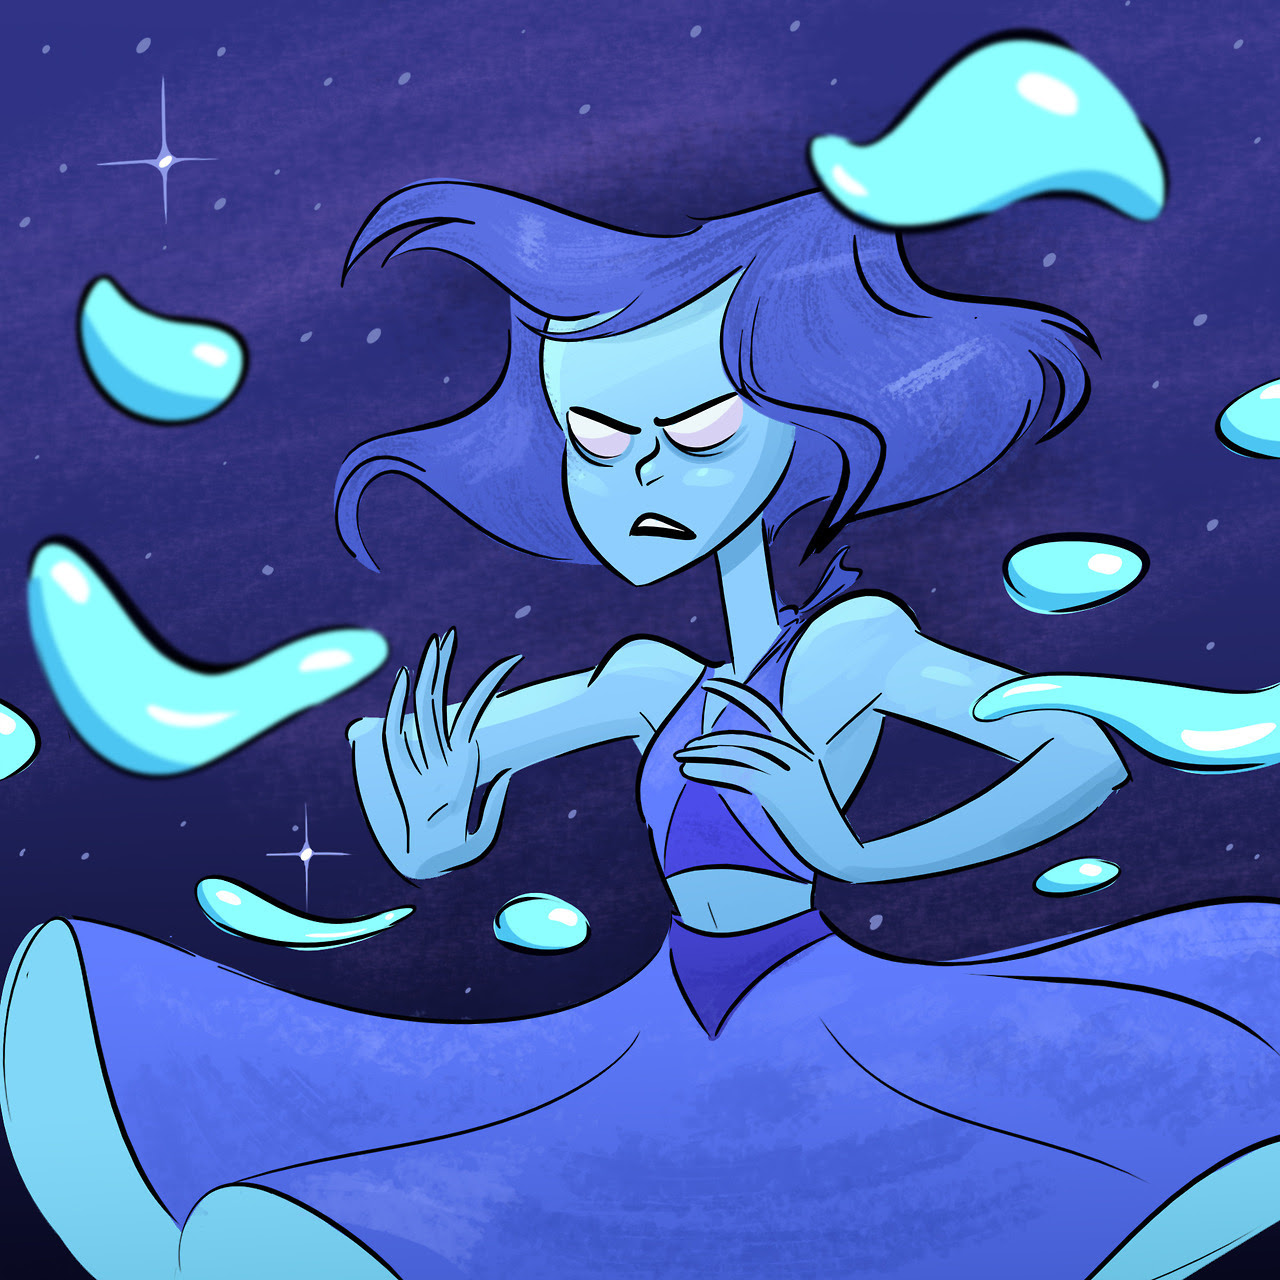 I know I'm a little late to the Steven Universe fanart party, but I couldn't resist drawing Lapis!